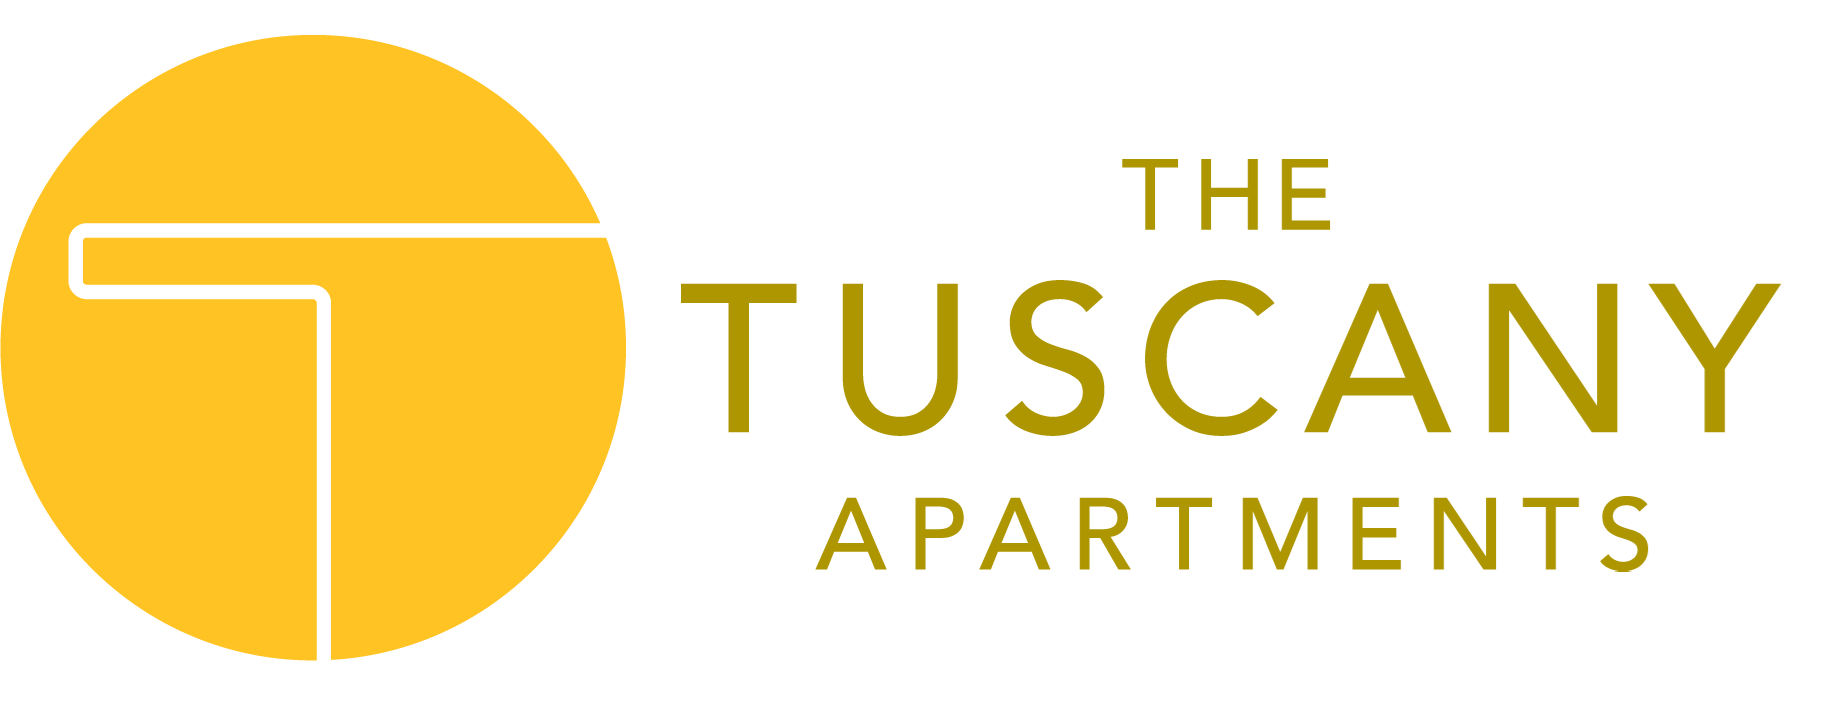 Tuscany Apartments Property Logo 21